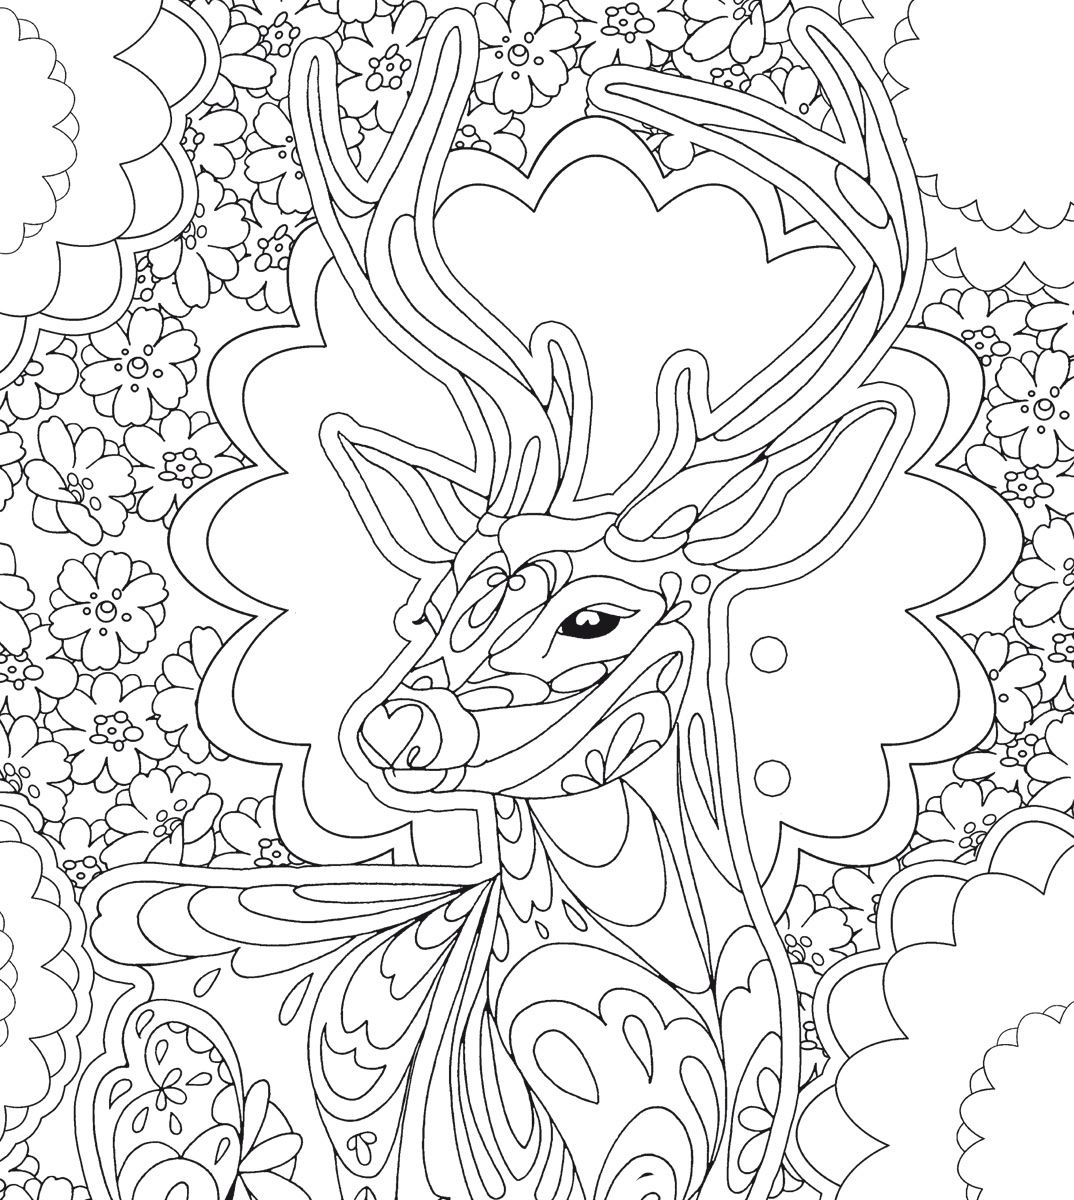 Creative Relaxation: colouring templates for beginners & advanced